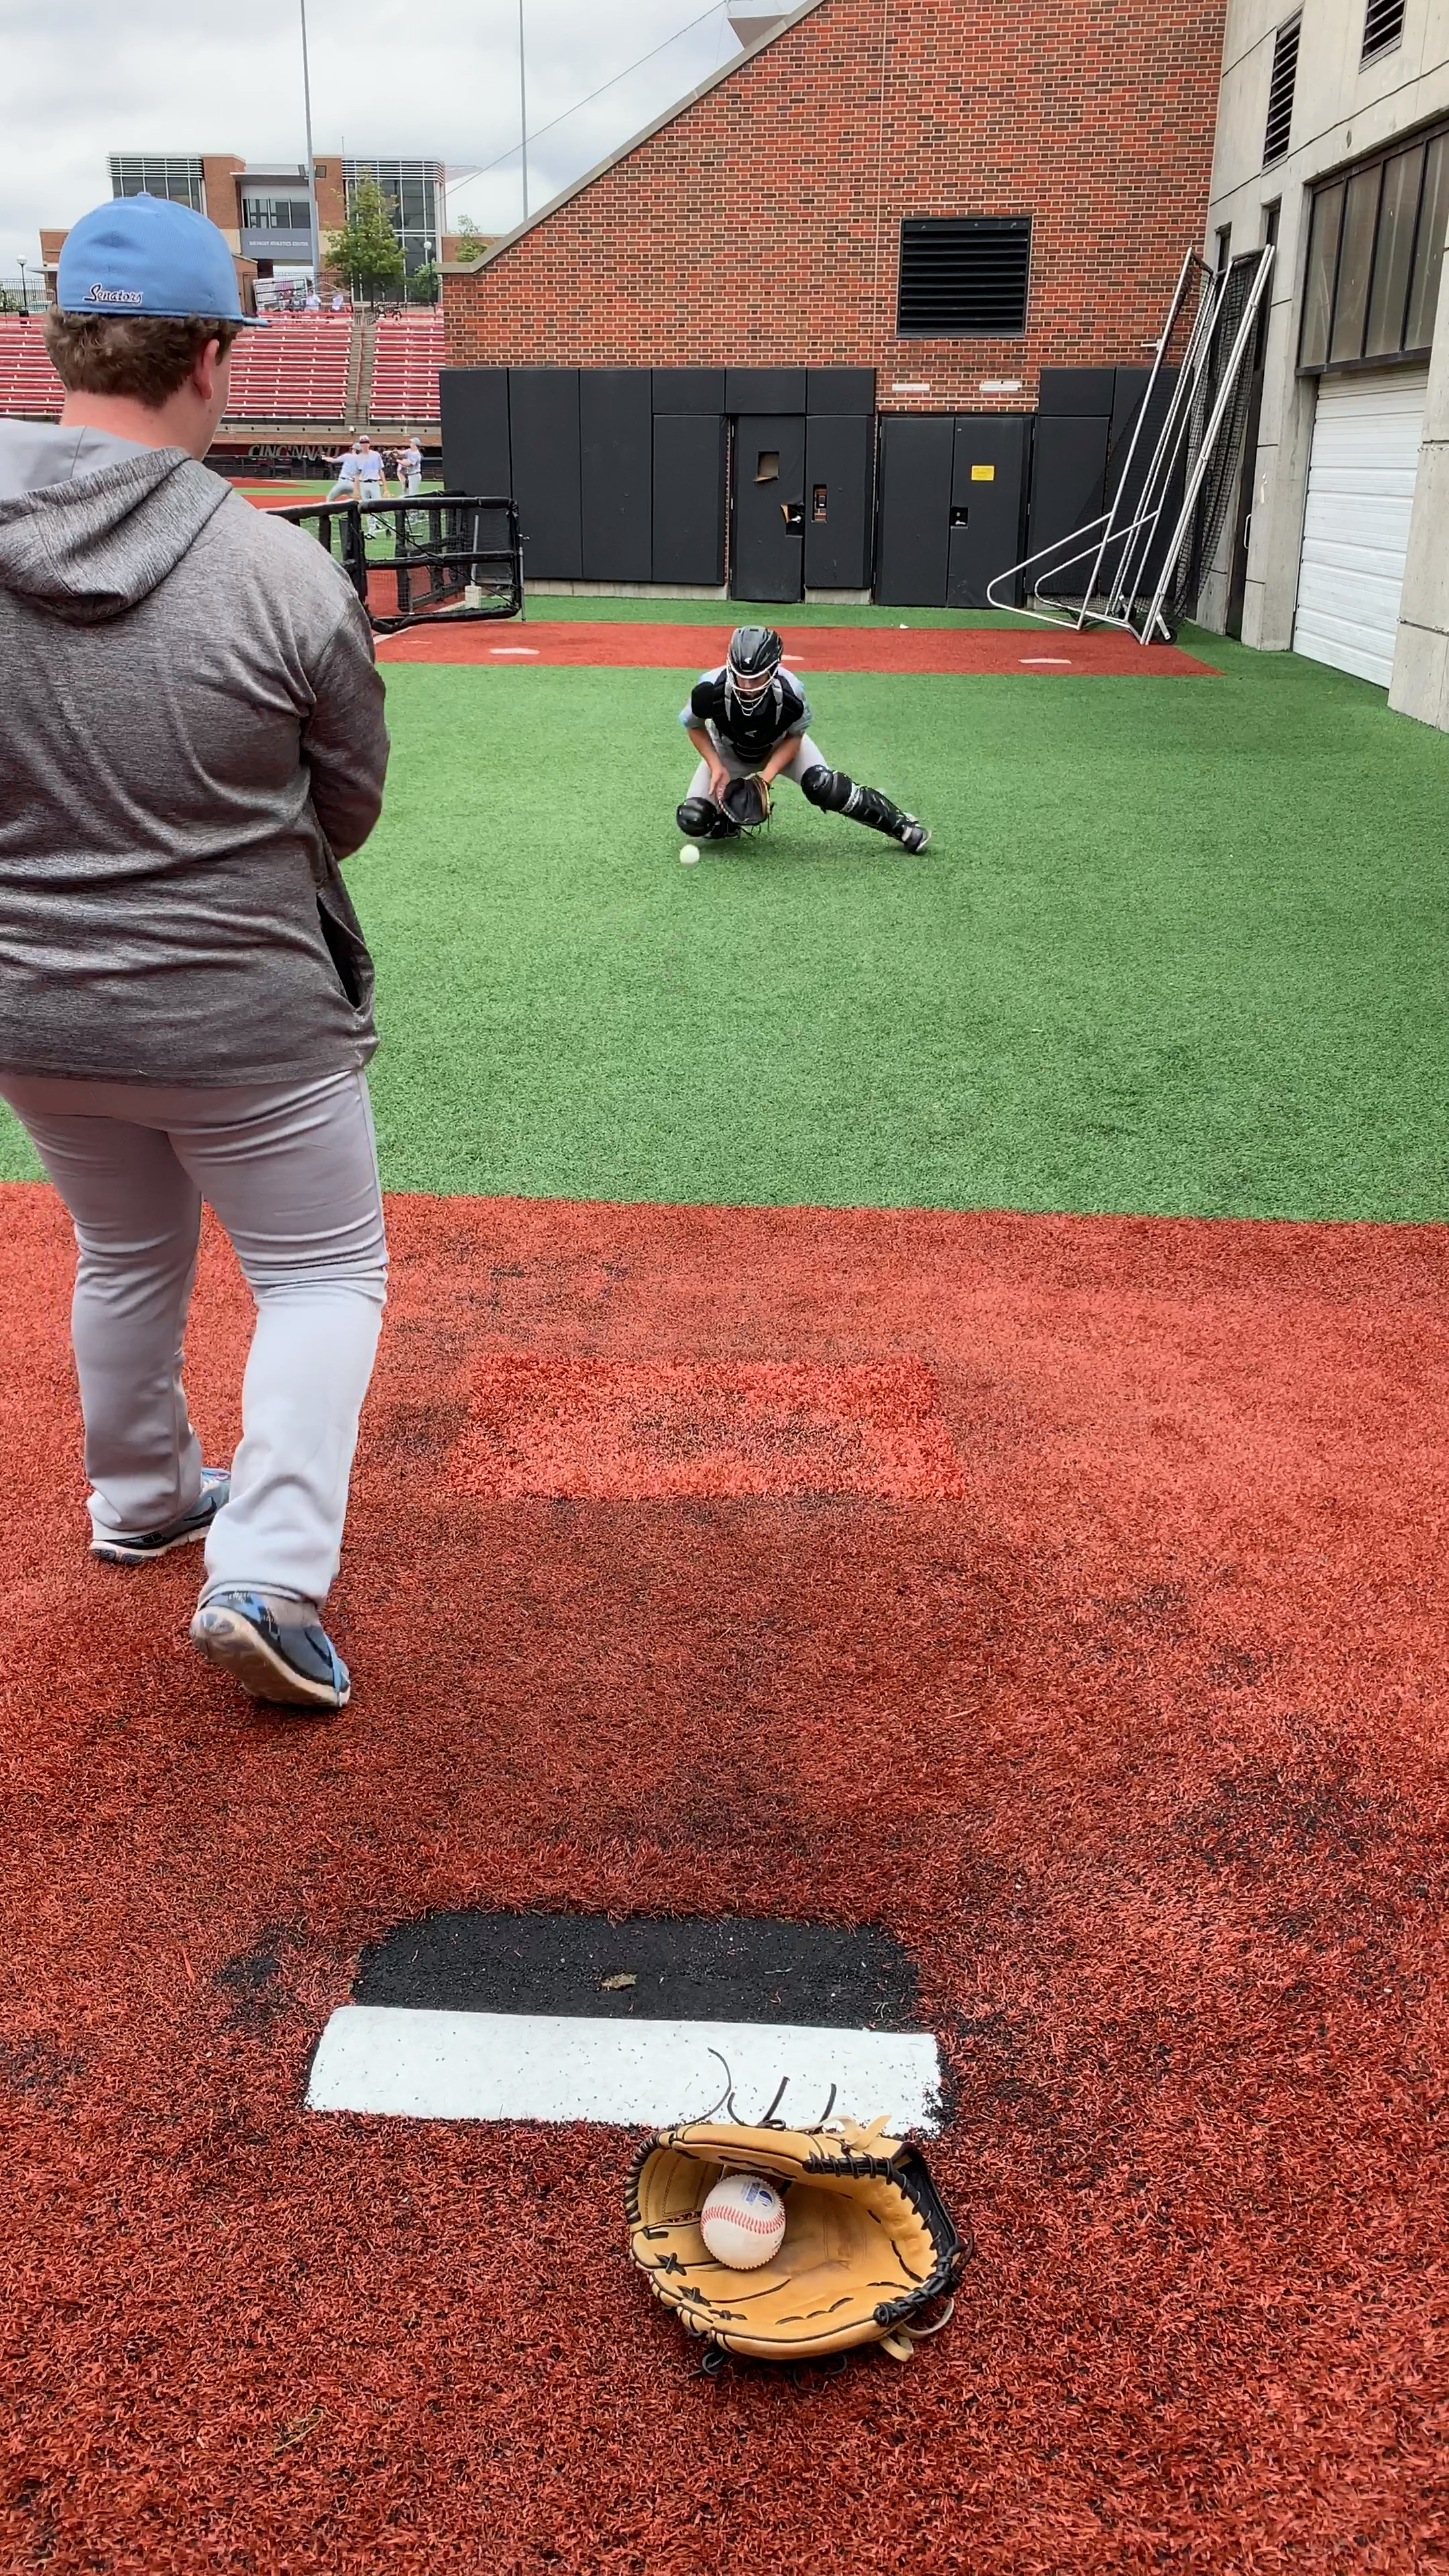 Watch One Of Our Catchers Blocking In Pregame Visit My Youtube Channel For More High Level Baseball Instruction Video Baseball Tips Baseball Softball Training